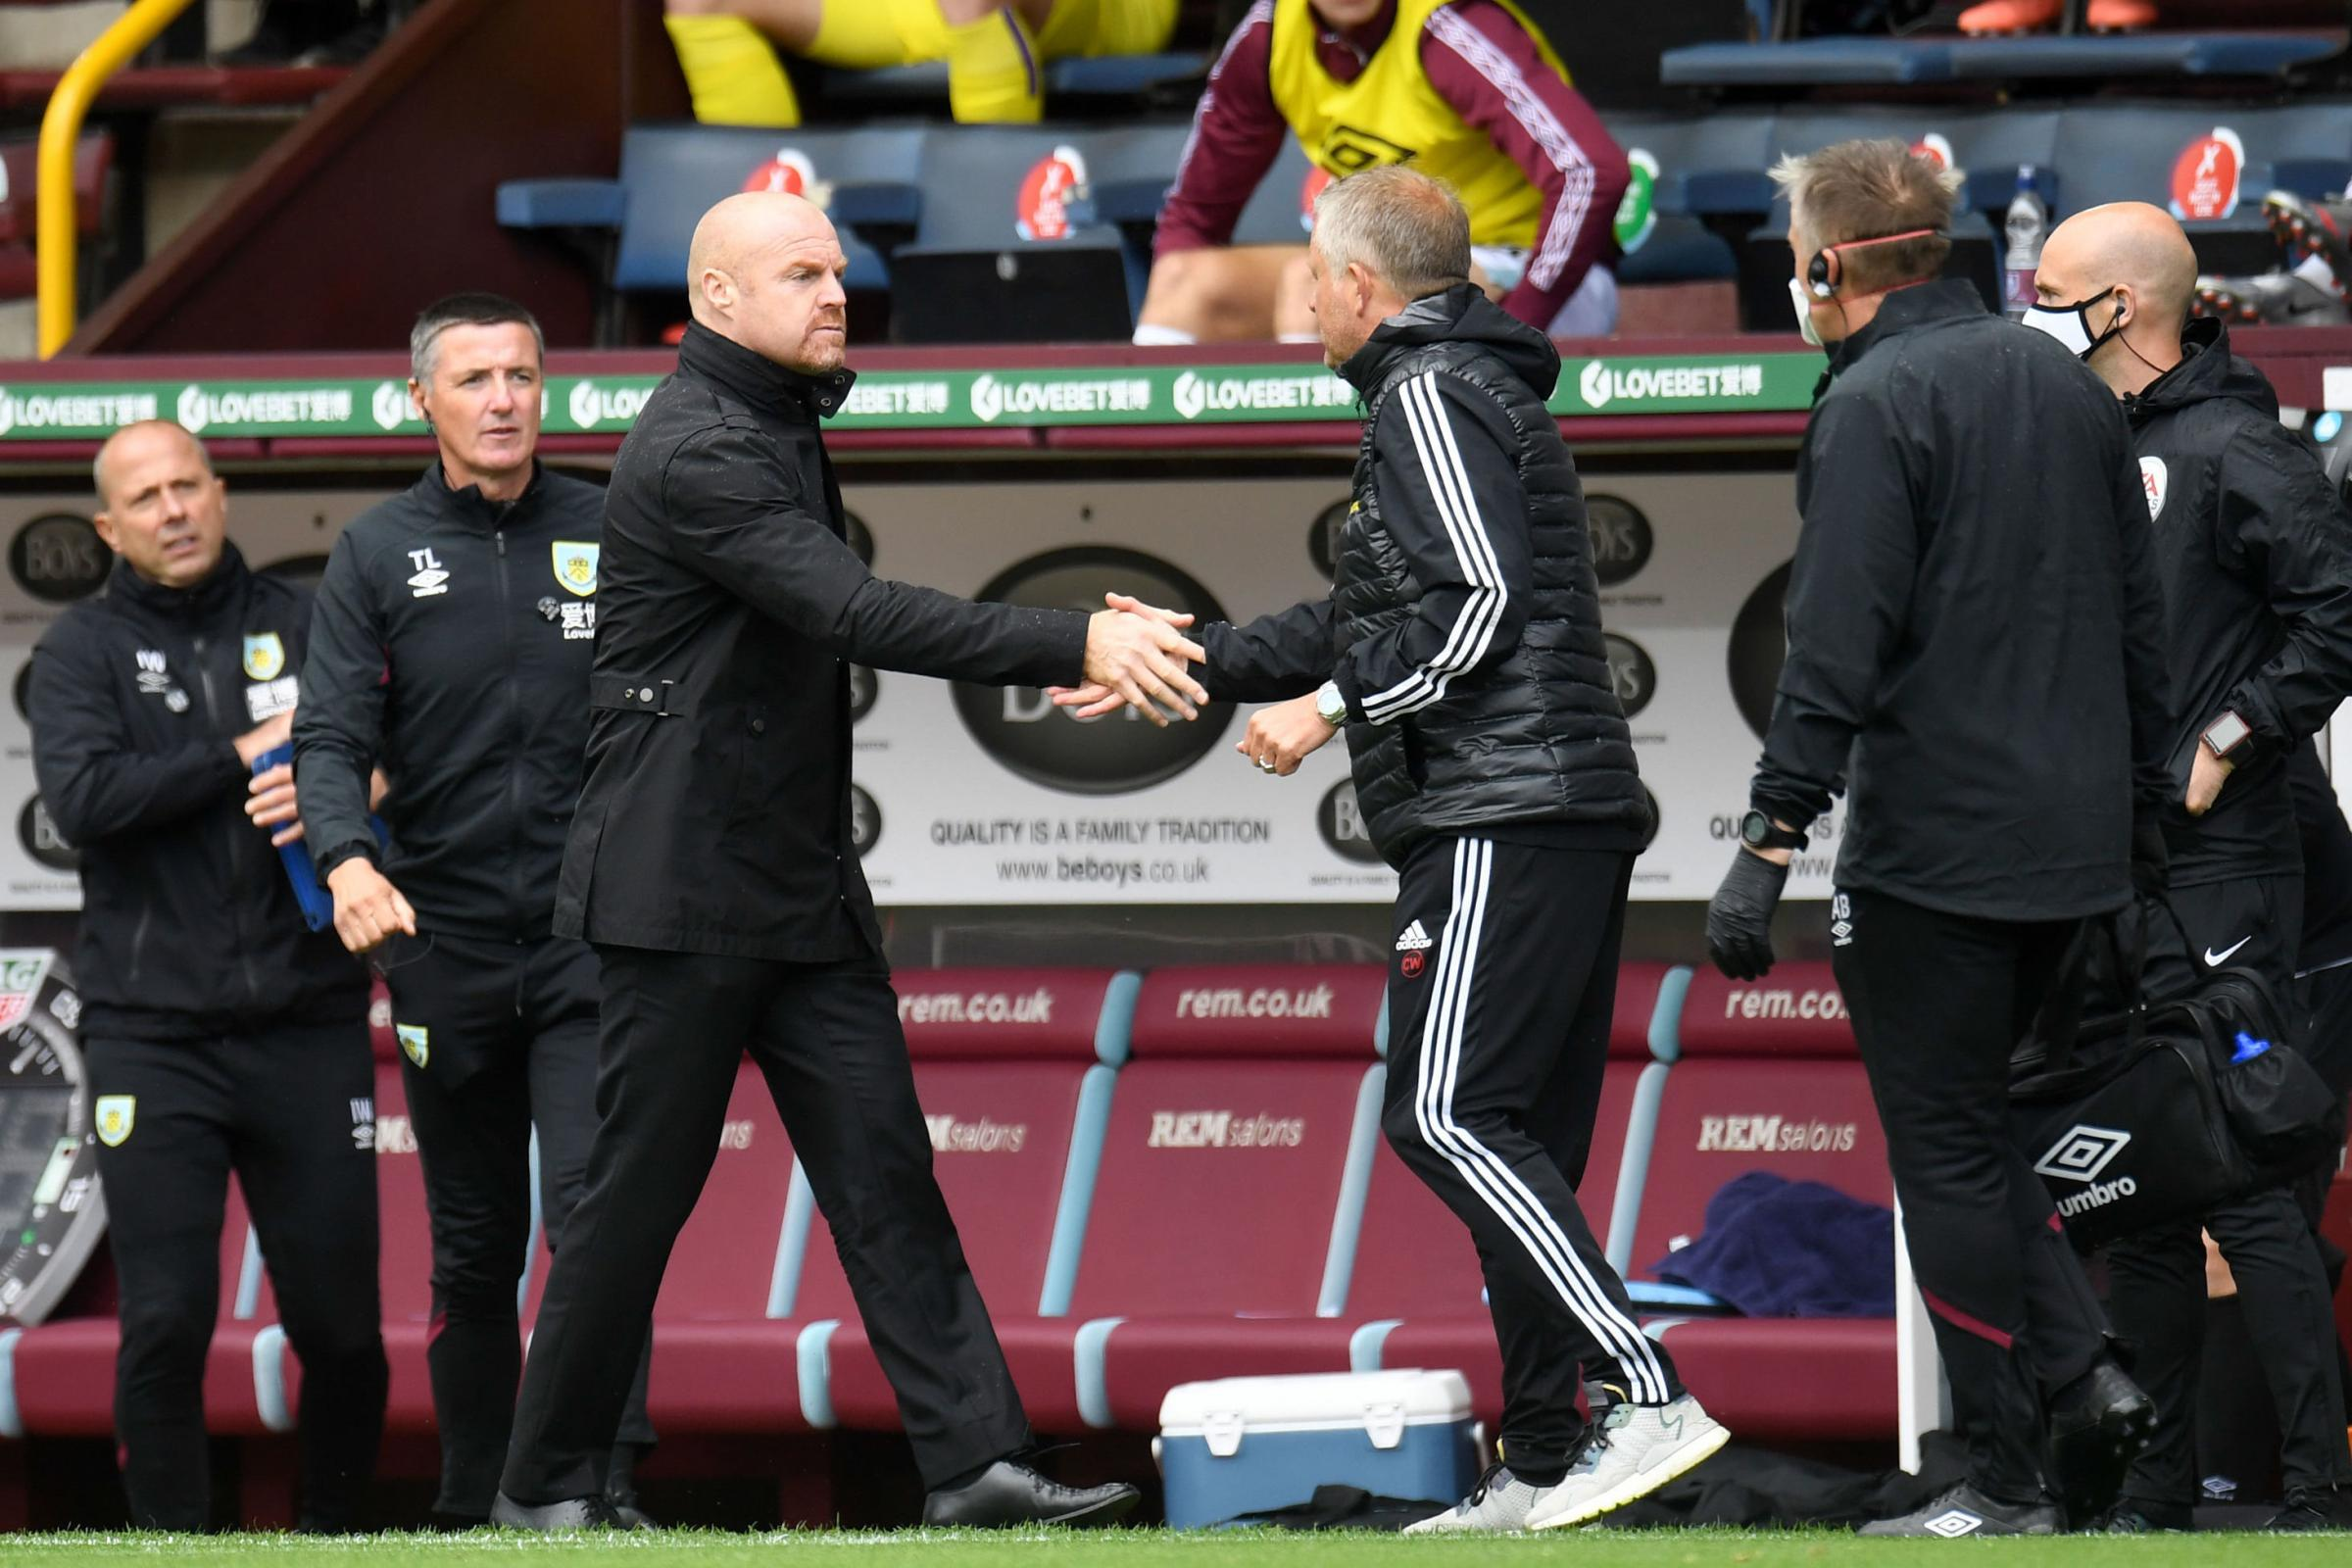 Europe is not the aim says Dyche as threadbare Clarets battle out drawW